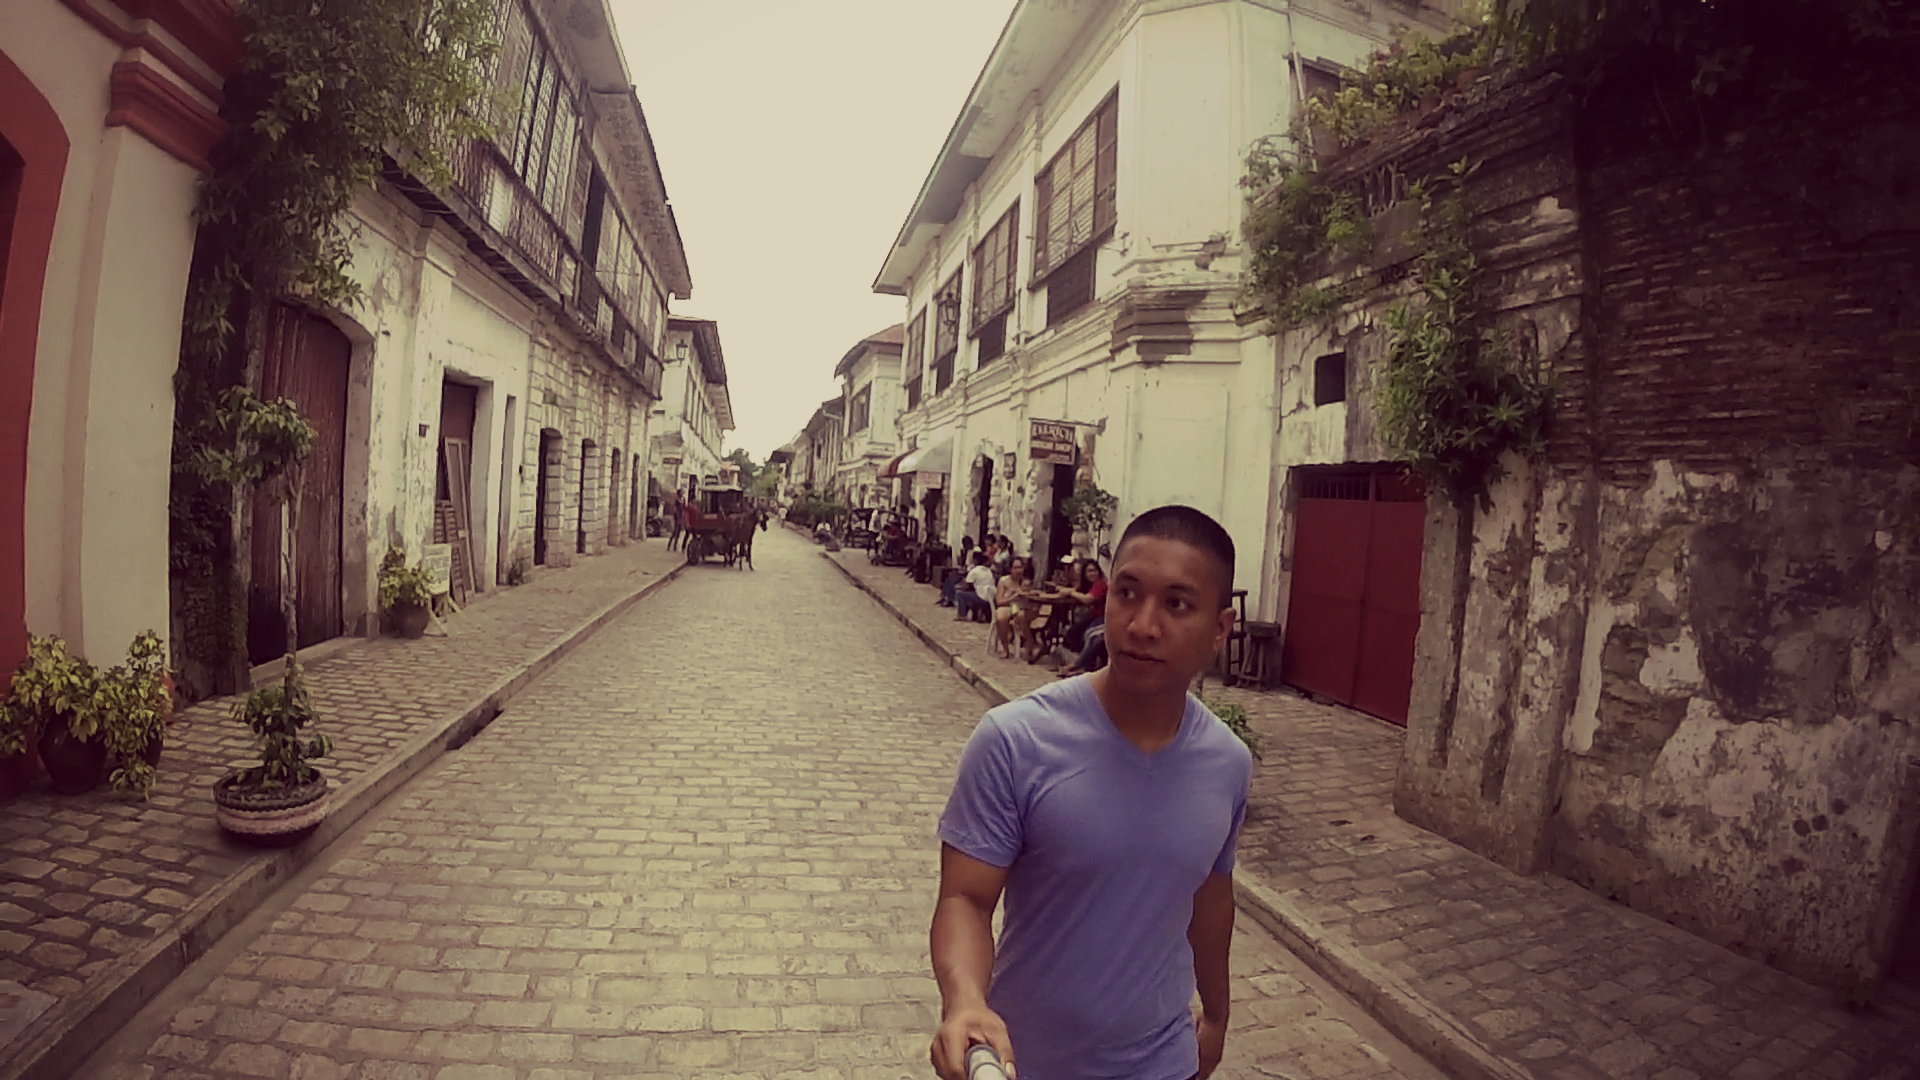 Very historic place rich with stories.   http://stephenlabit.com/2014/07/17/snapshots-from-vigan/